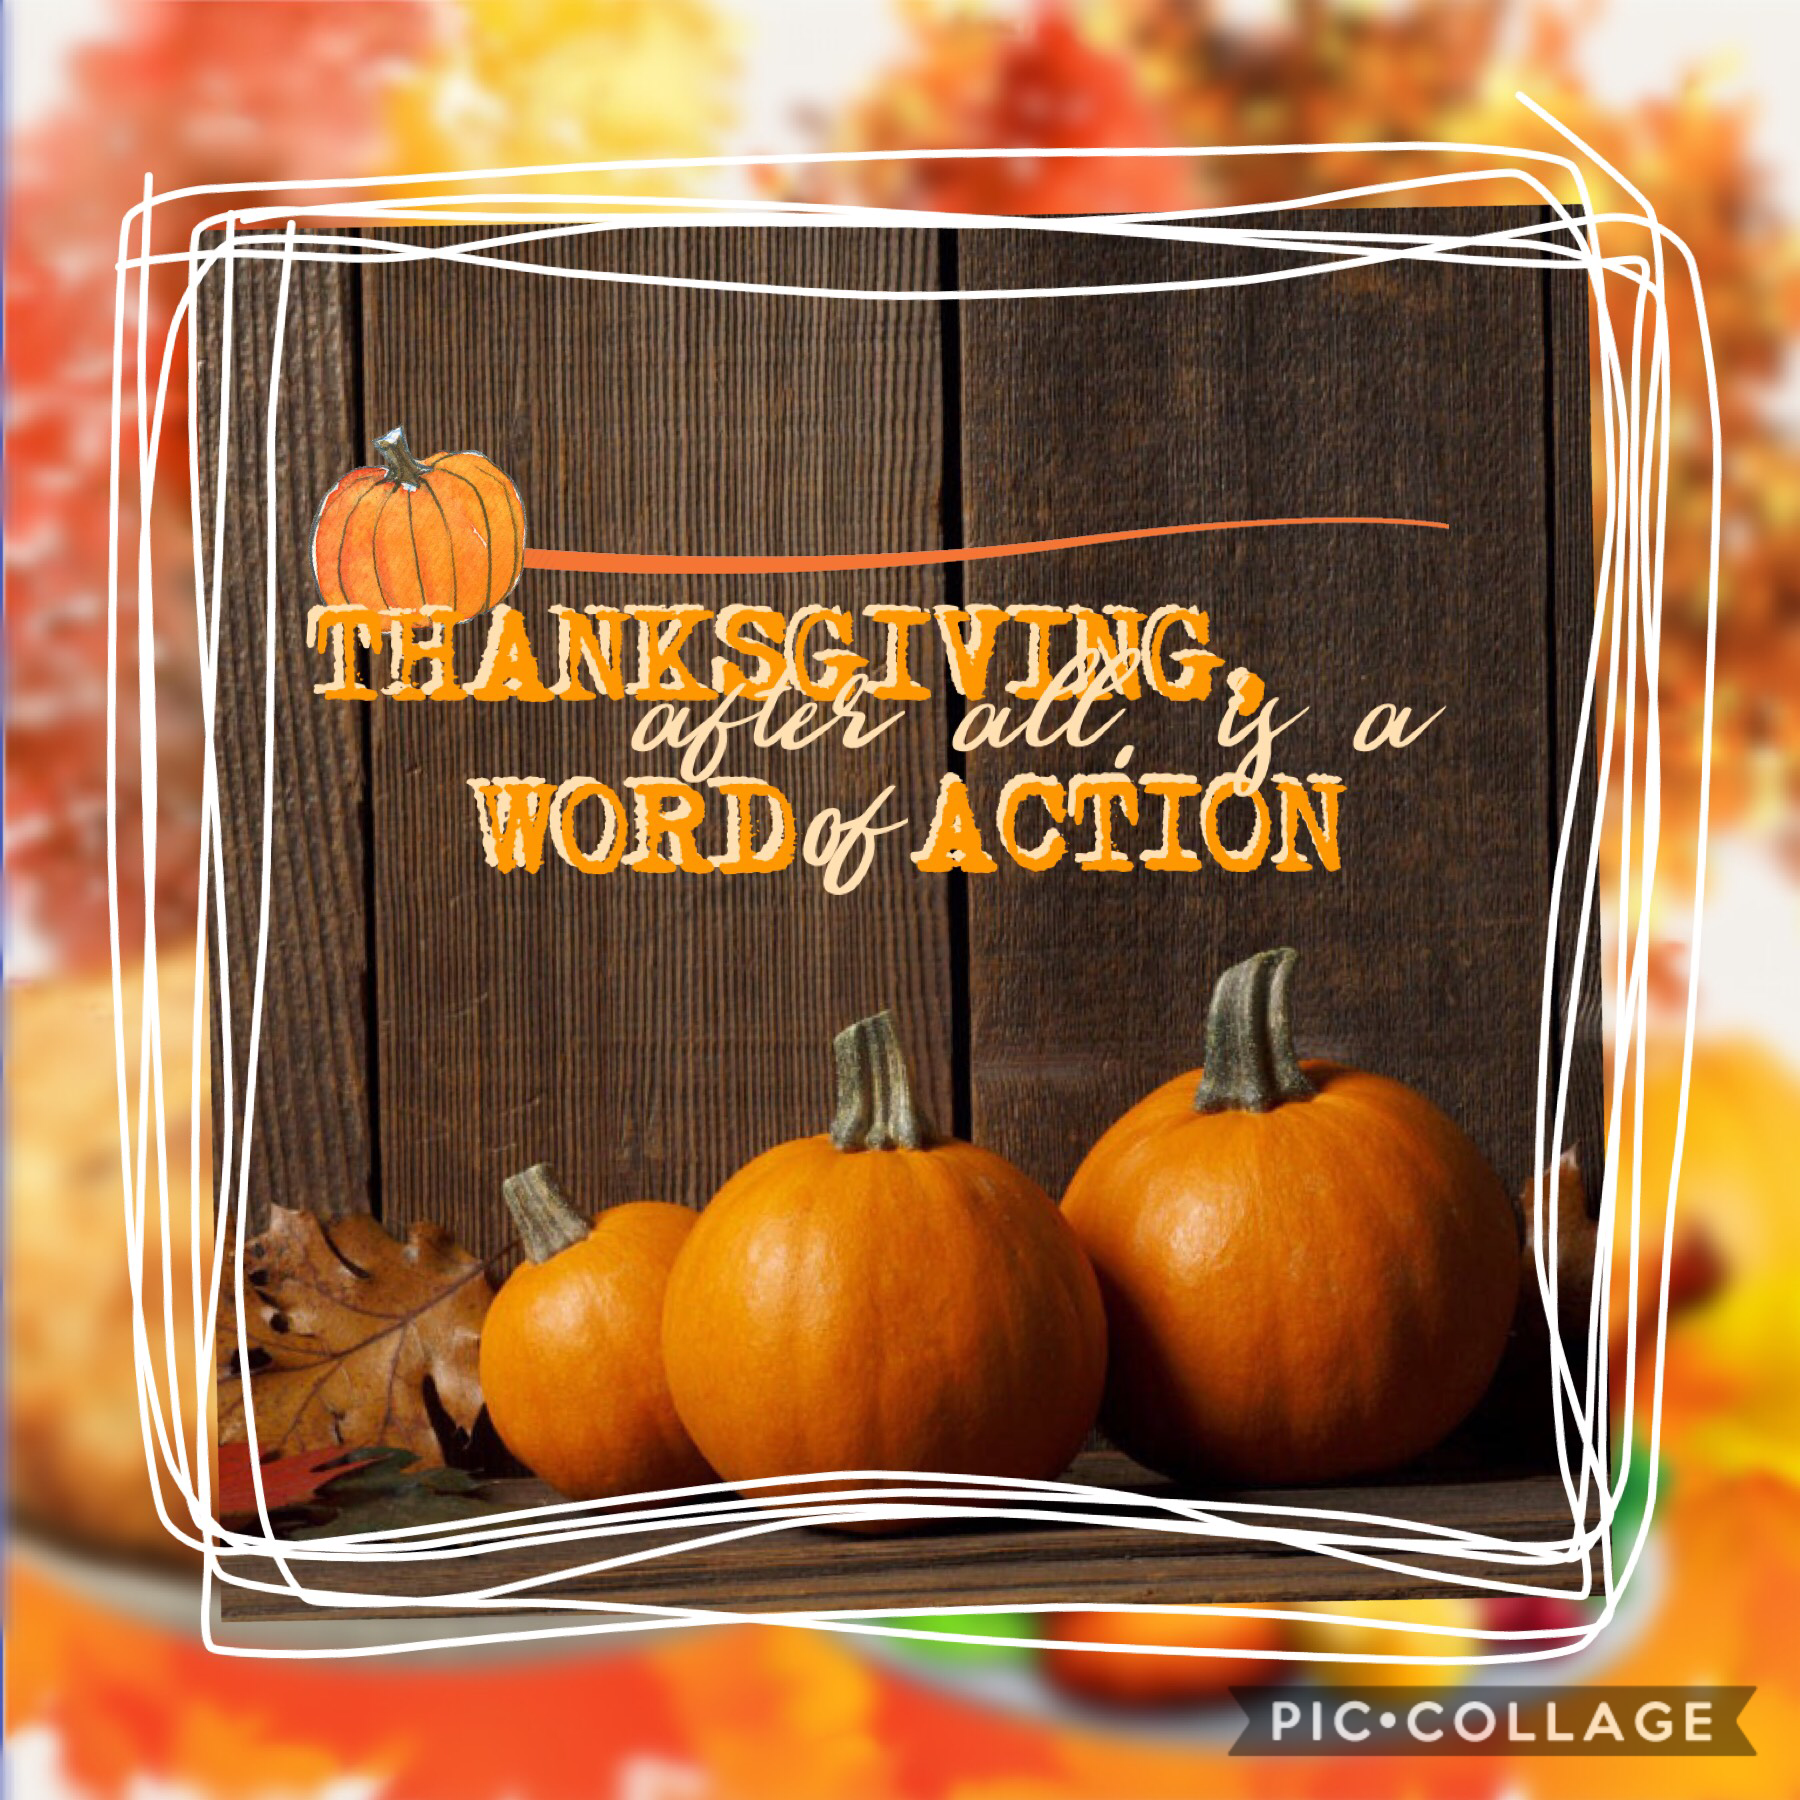 Hey guys!!! I posted twice this week... 😐  This is my entry to the PC thanksgiving contest! It's due in about 17 minutes. I'm so happy to start conversations with you guys again! Comment and rate!